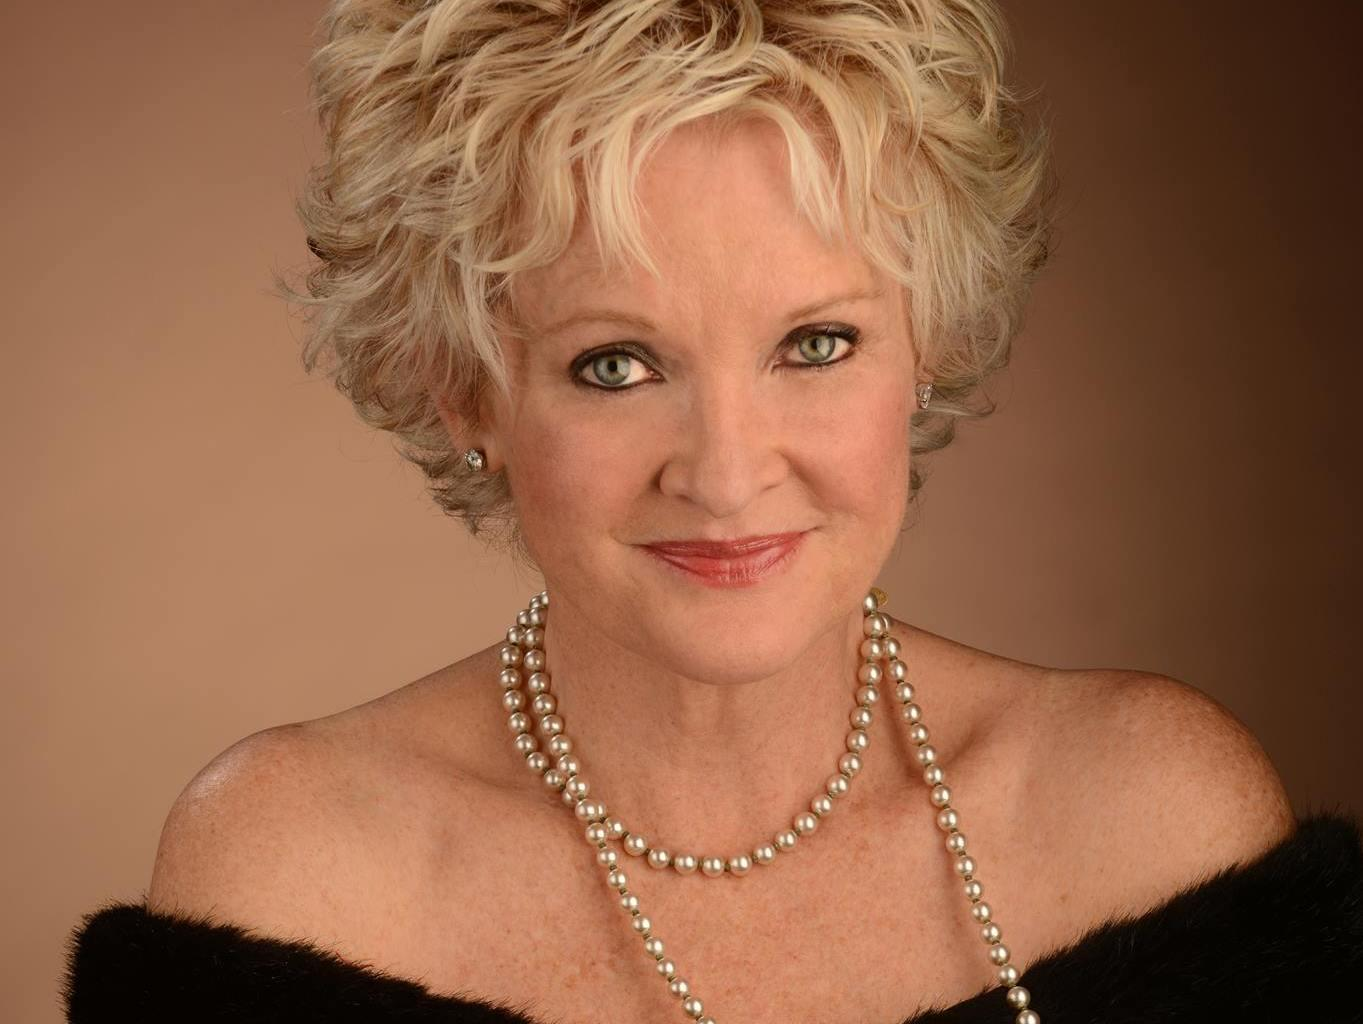 Musical adaptation of ever after casts christine ebersole geekynews